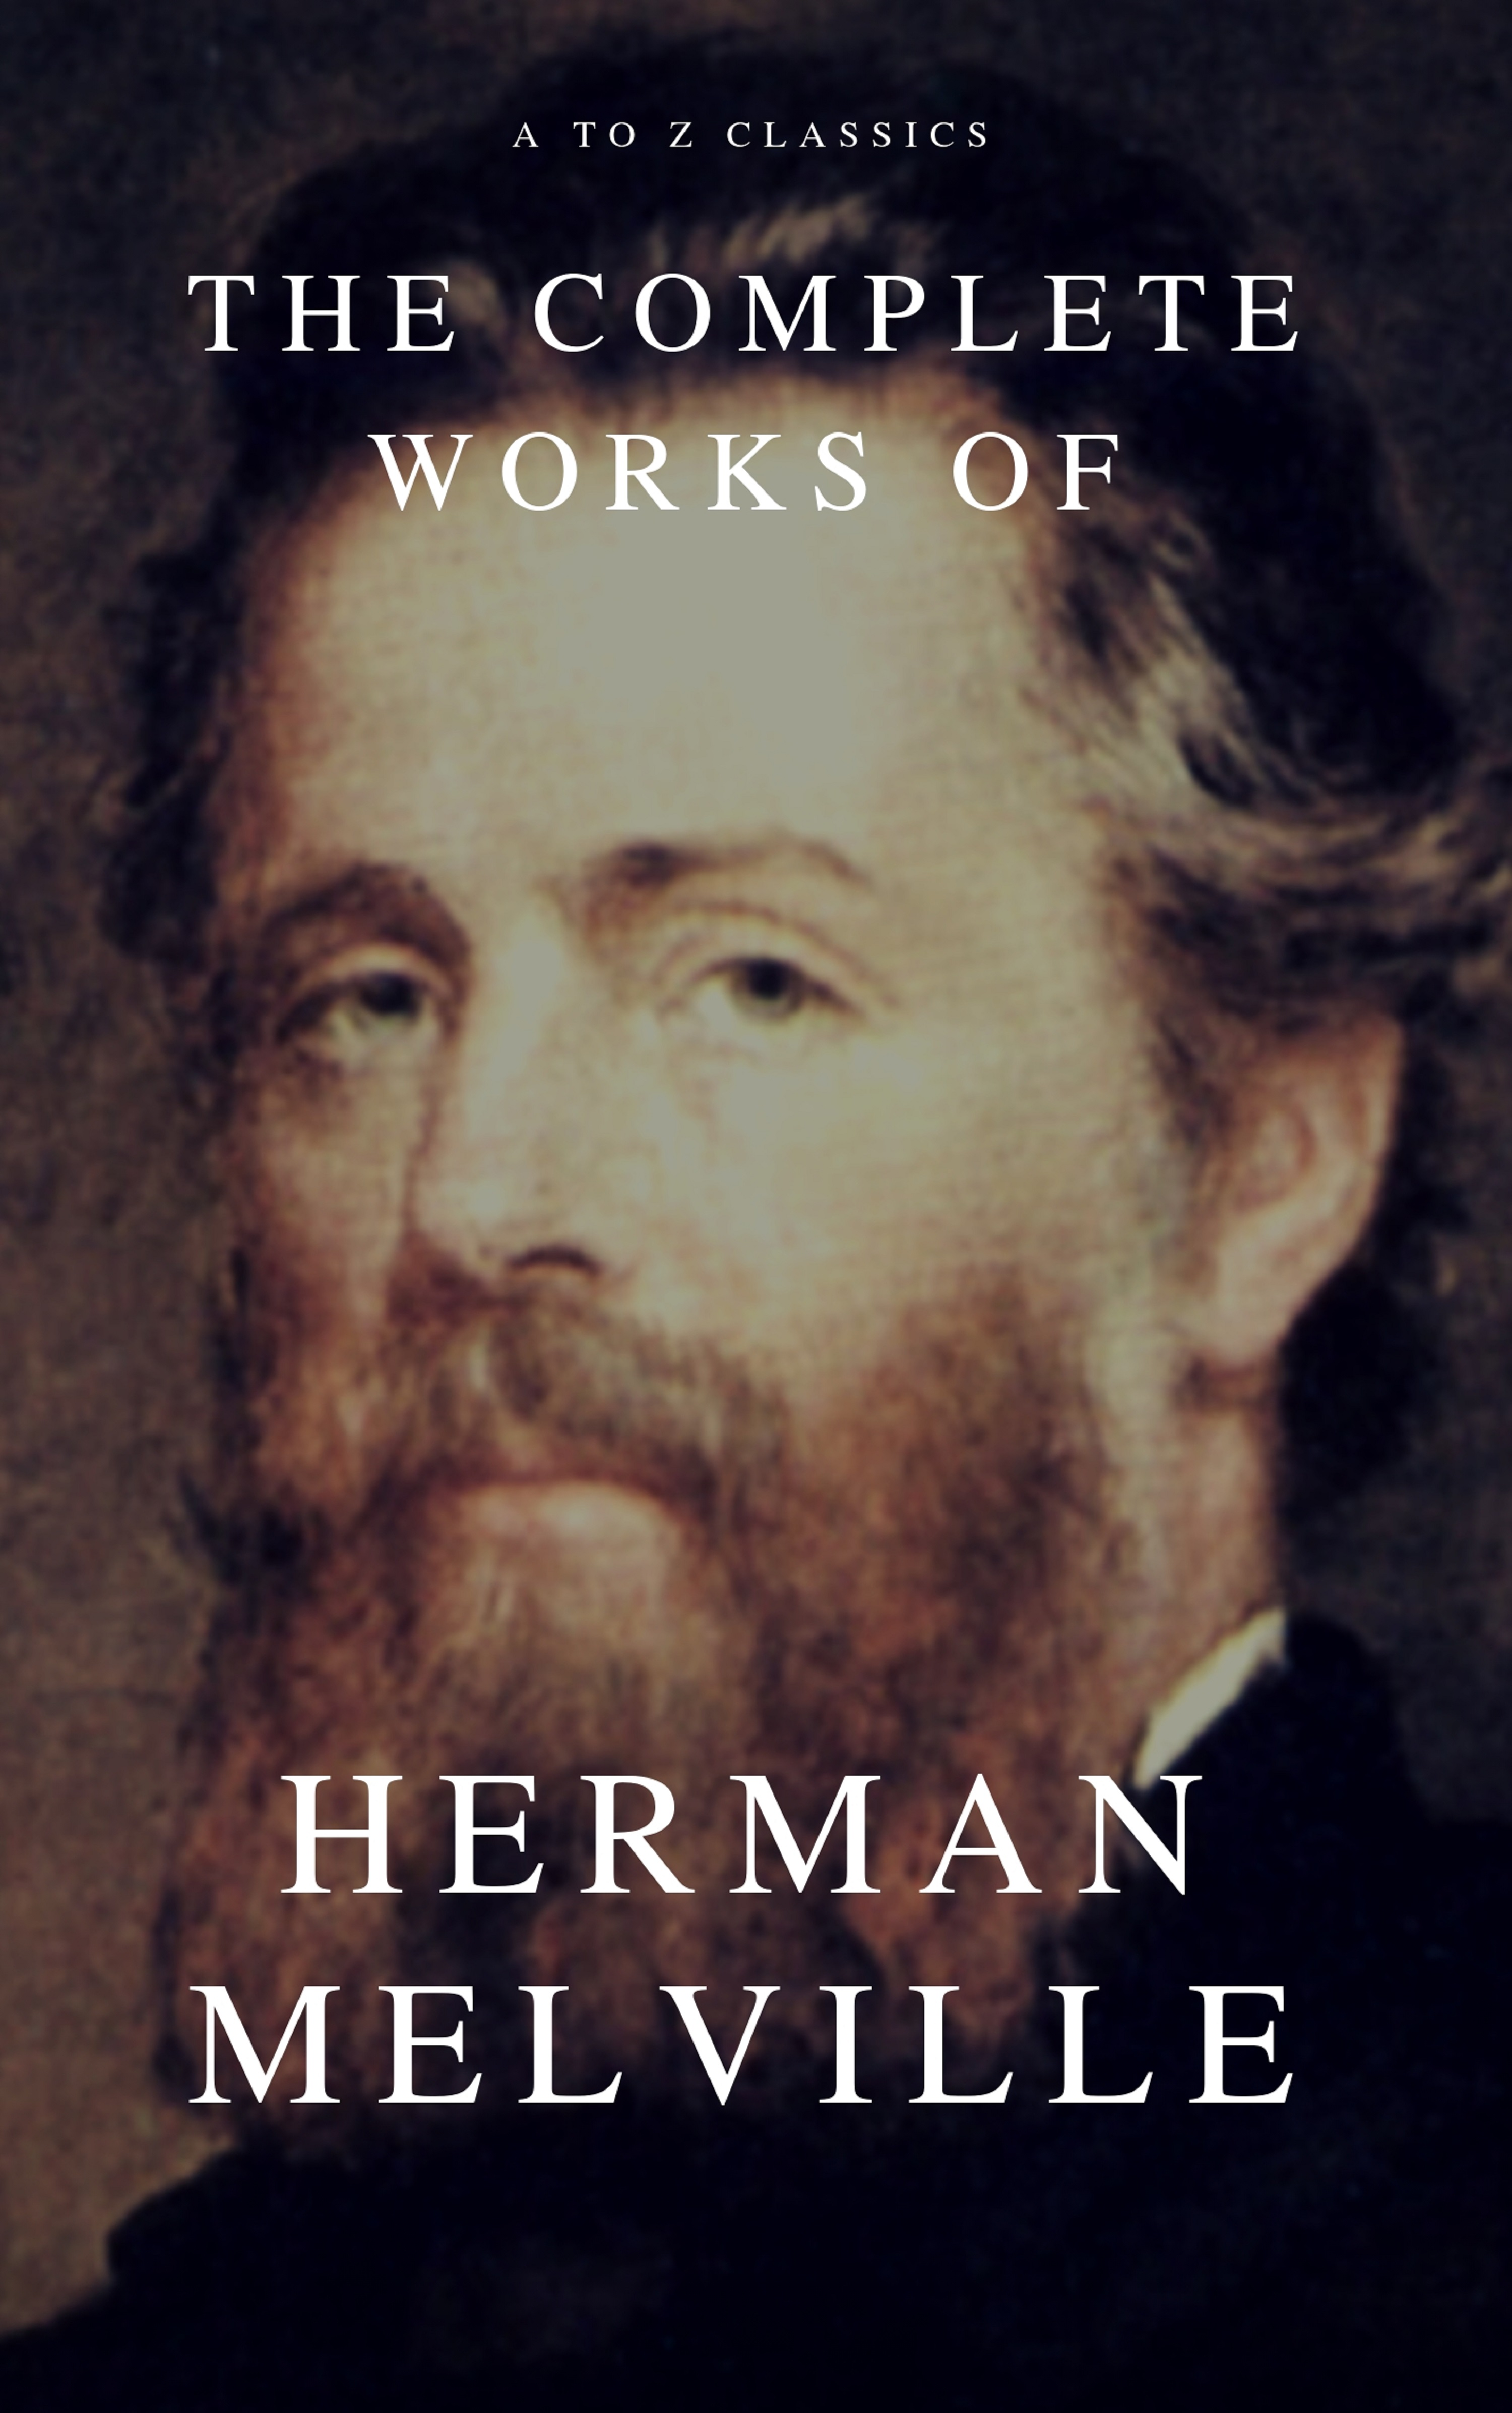 Herman Melville The Complete Works of Herman Melville (A to Z Classics) melville herman the apple tree table and other sketches